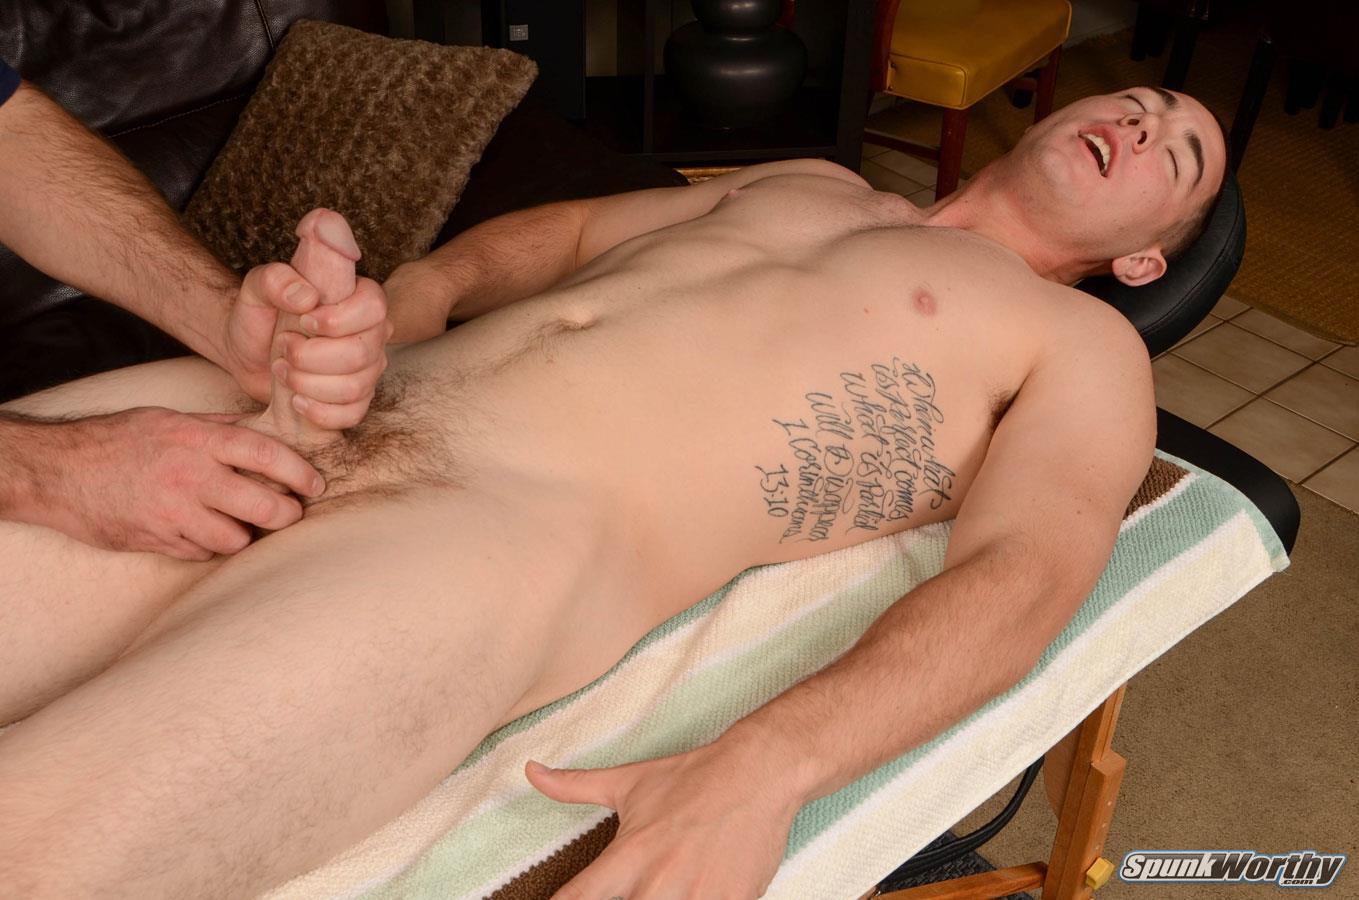 SpunkWorthy Damian Straight Marine Gets a Handjob From A Guy Amateur Gay Porn 14 Straight 22 Year Old Marine Gets A Handjob From A Guy